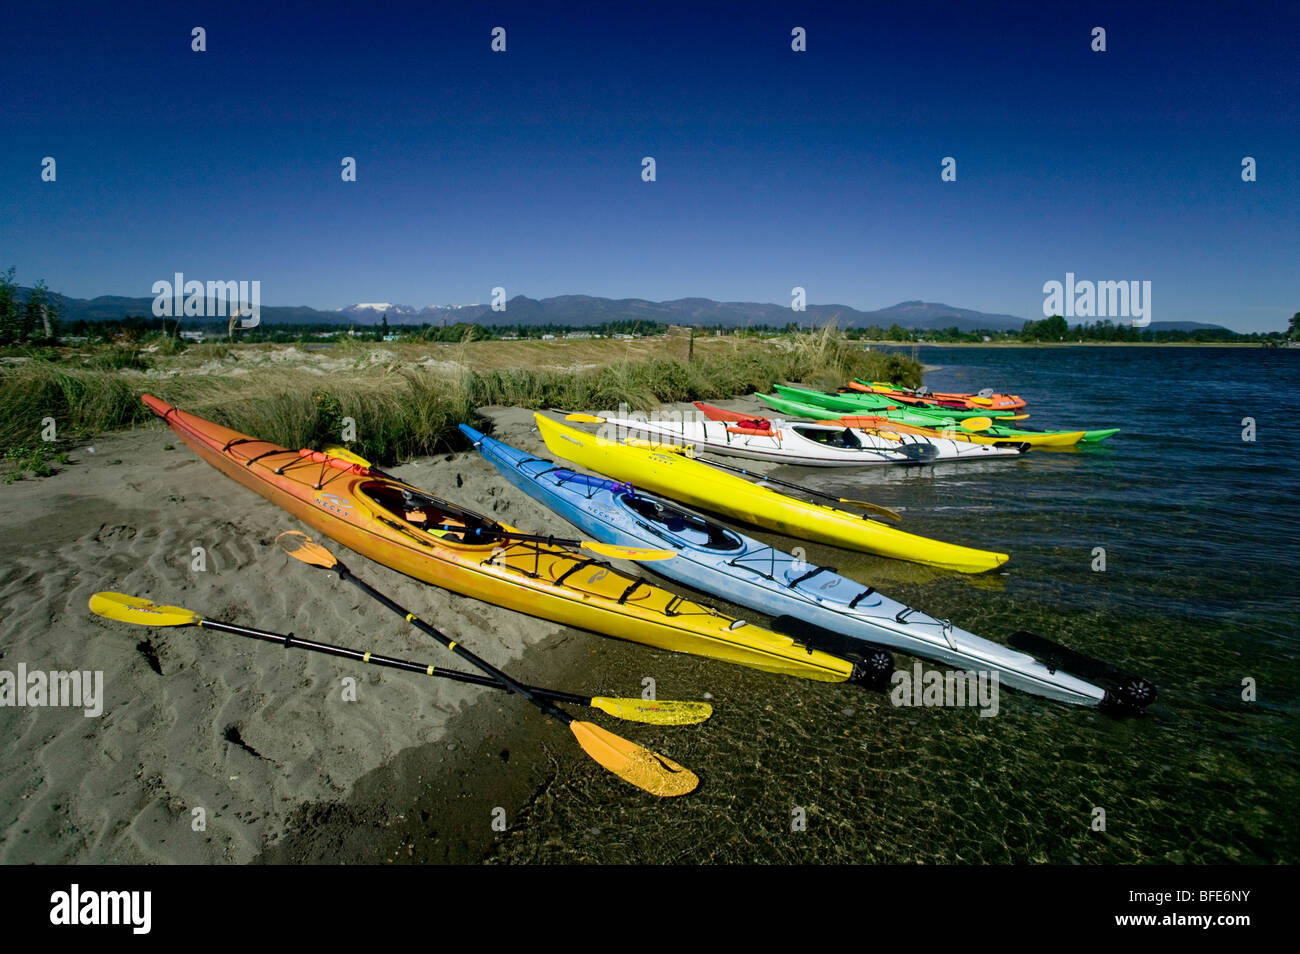 Bright and colorful kayaks hauled up in the Comox Bay, Comox Valley, Vancouver Island, British Columbia, Canada - Stock Image